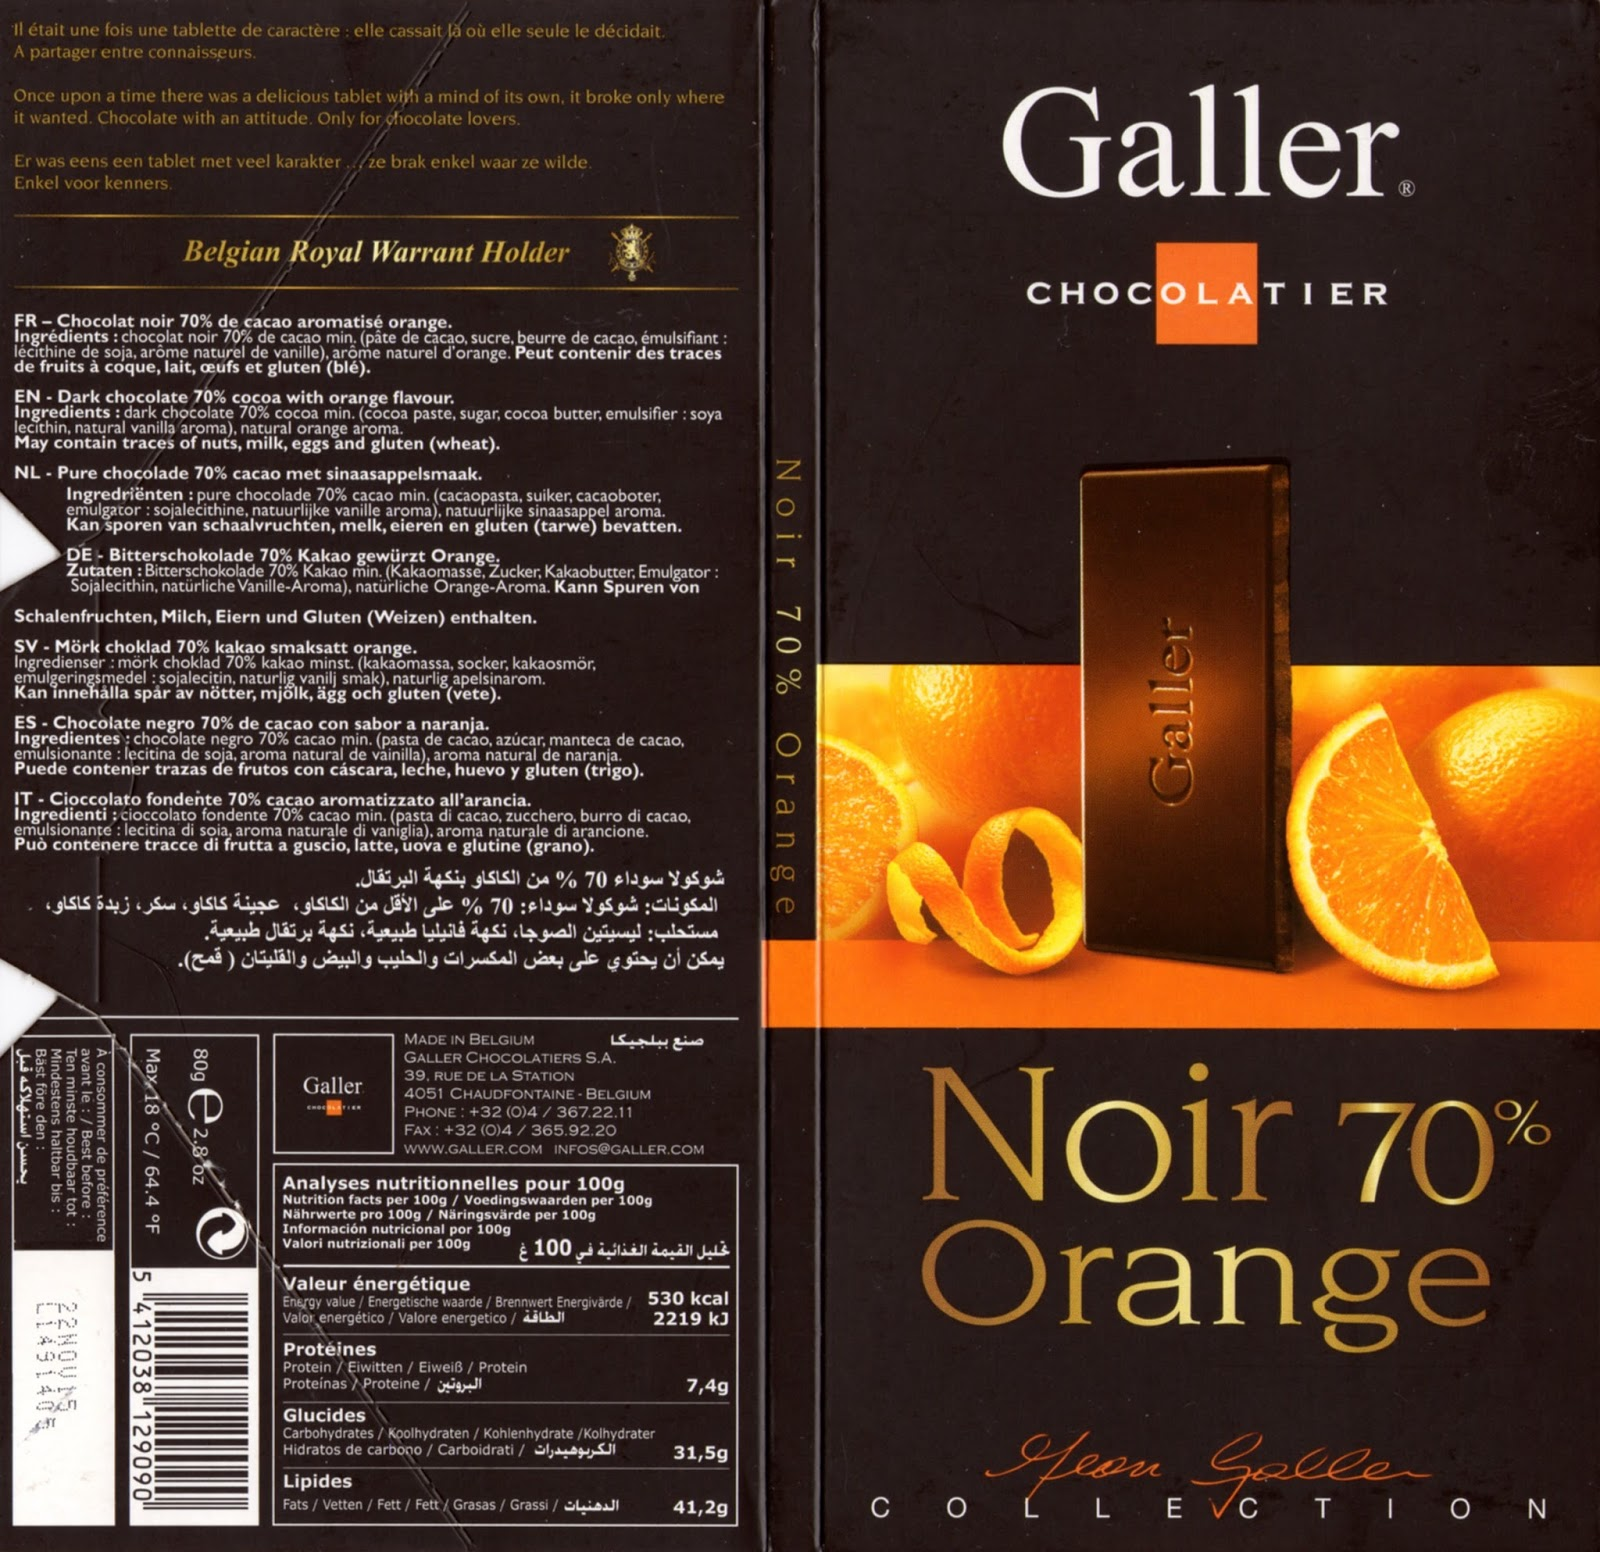 tablette de chocolat noir gourmand galler noir orange 70